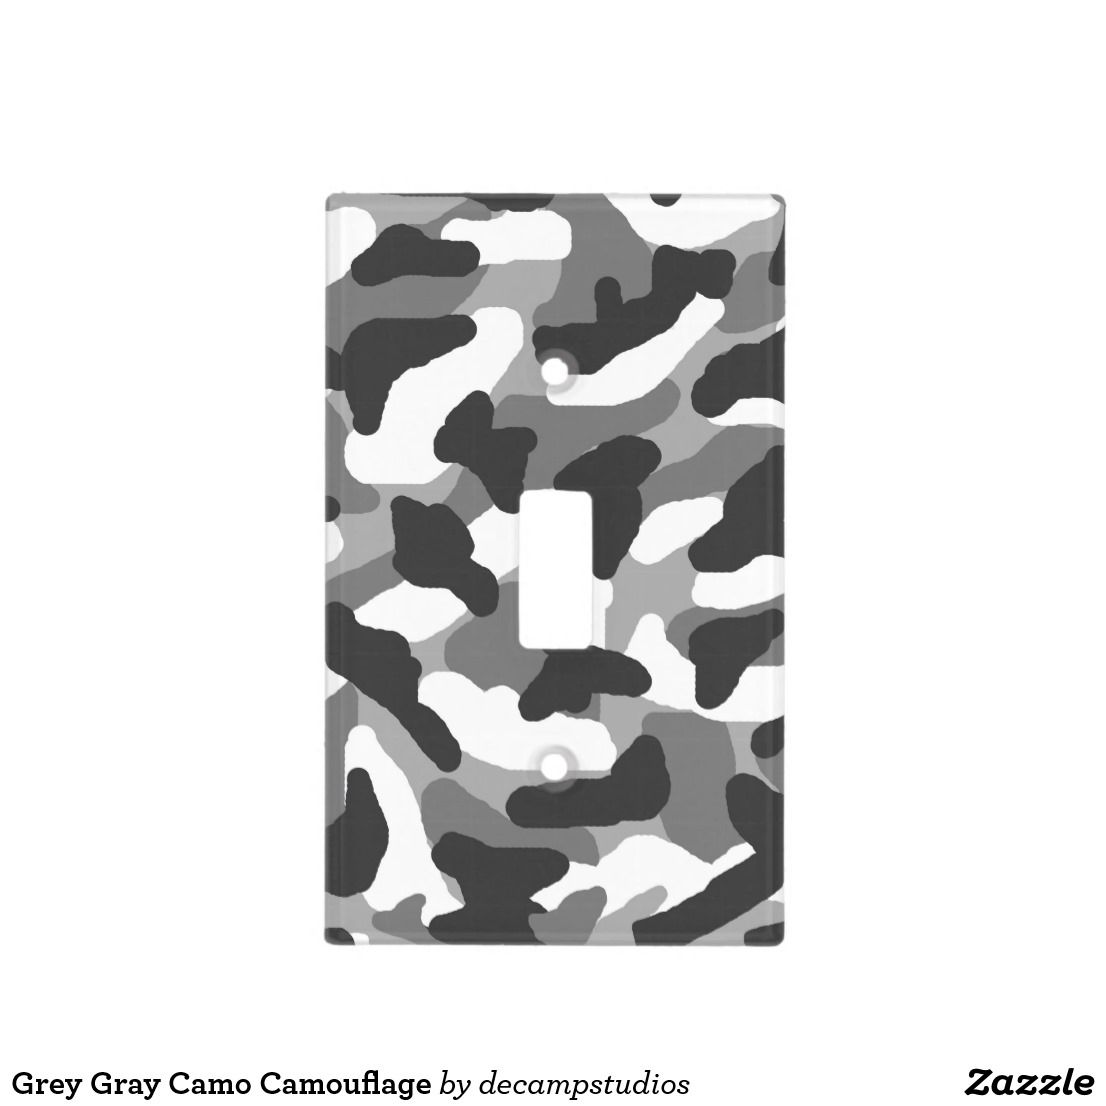 Grey Gray Camo Camouflage Light Switch Cover Zazzle Com Light Switch Covers Switch Plate Covers Camo Bedroom